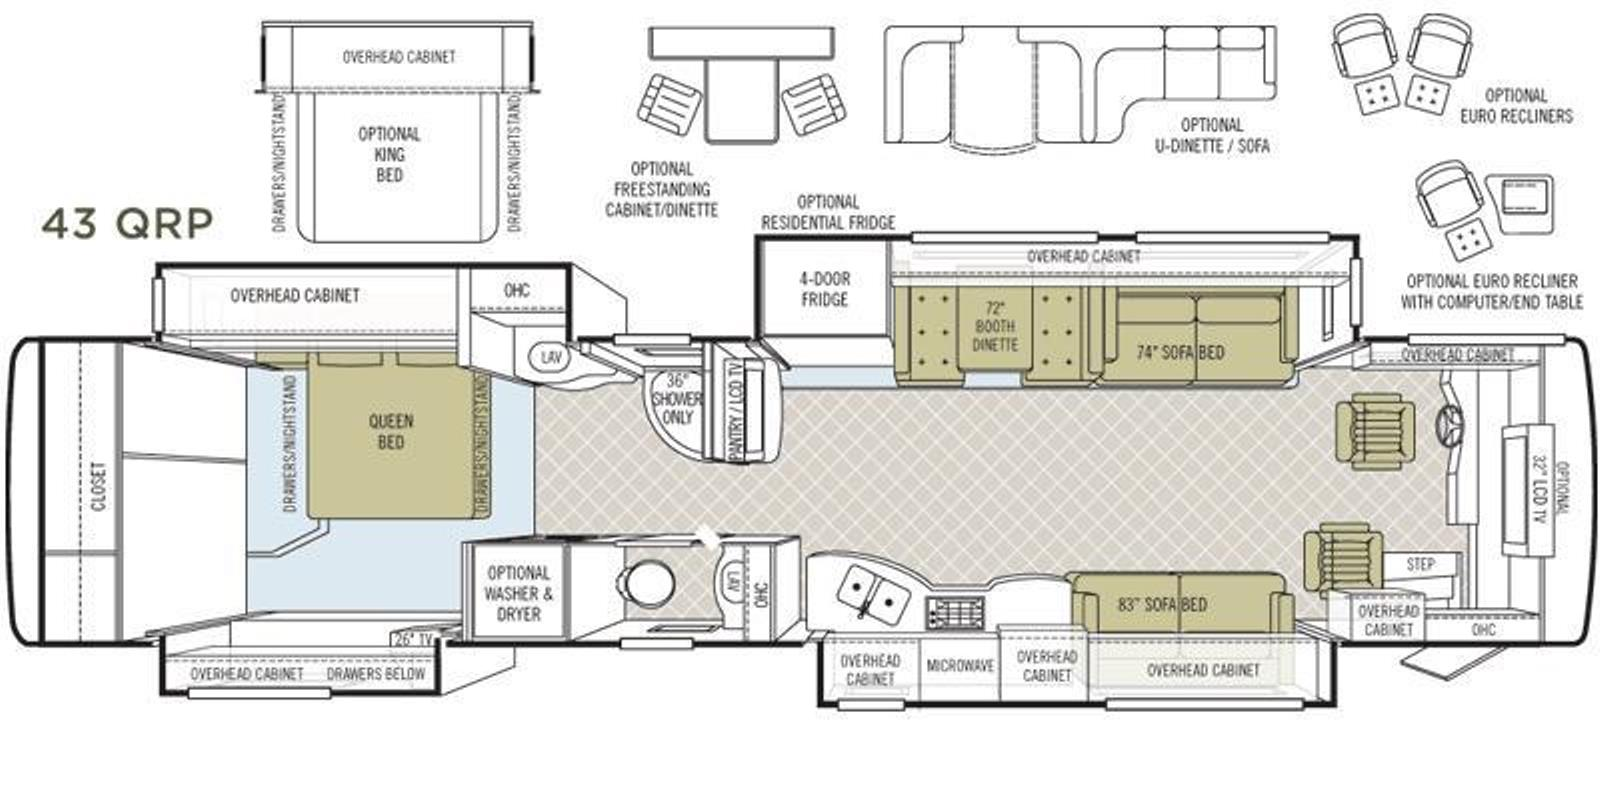 Fleetwood Tioga in addition SuperSizePhotos furthermore Details besides Skinned also American Coach. on tiffin allegro motorhomes floor plans